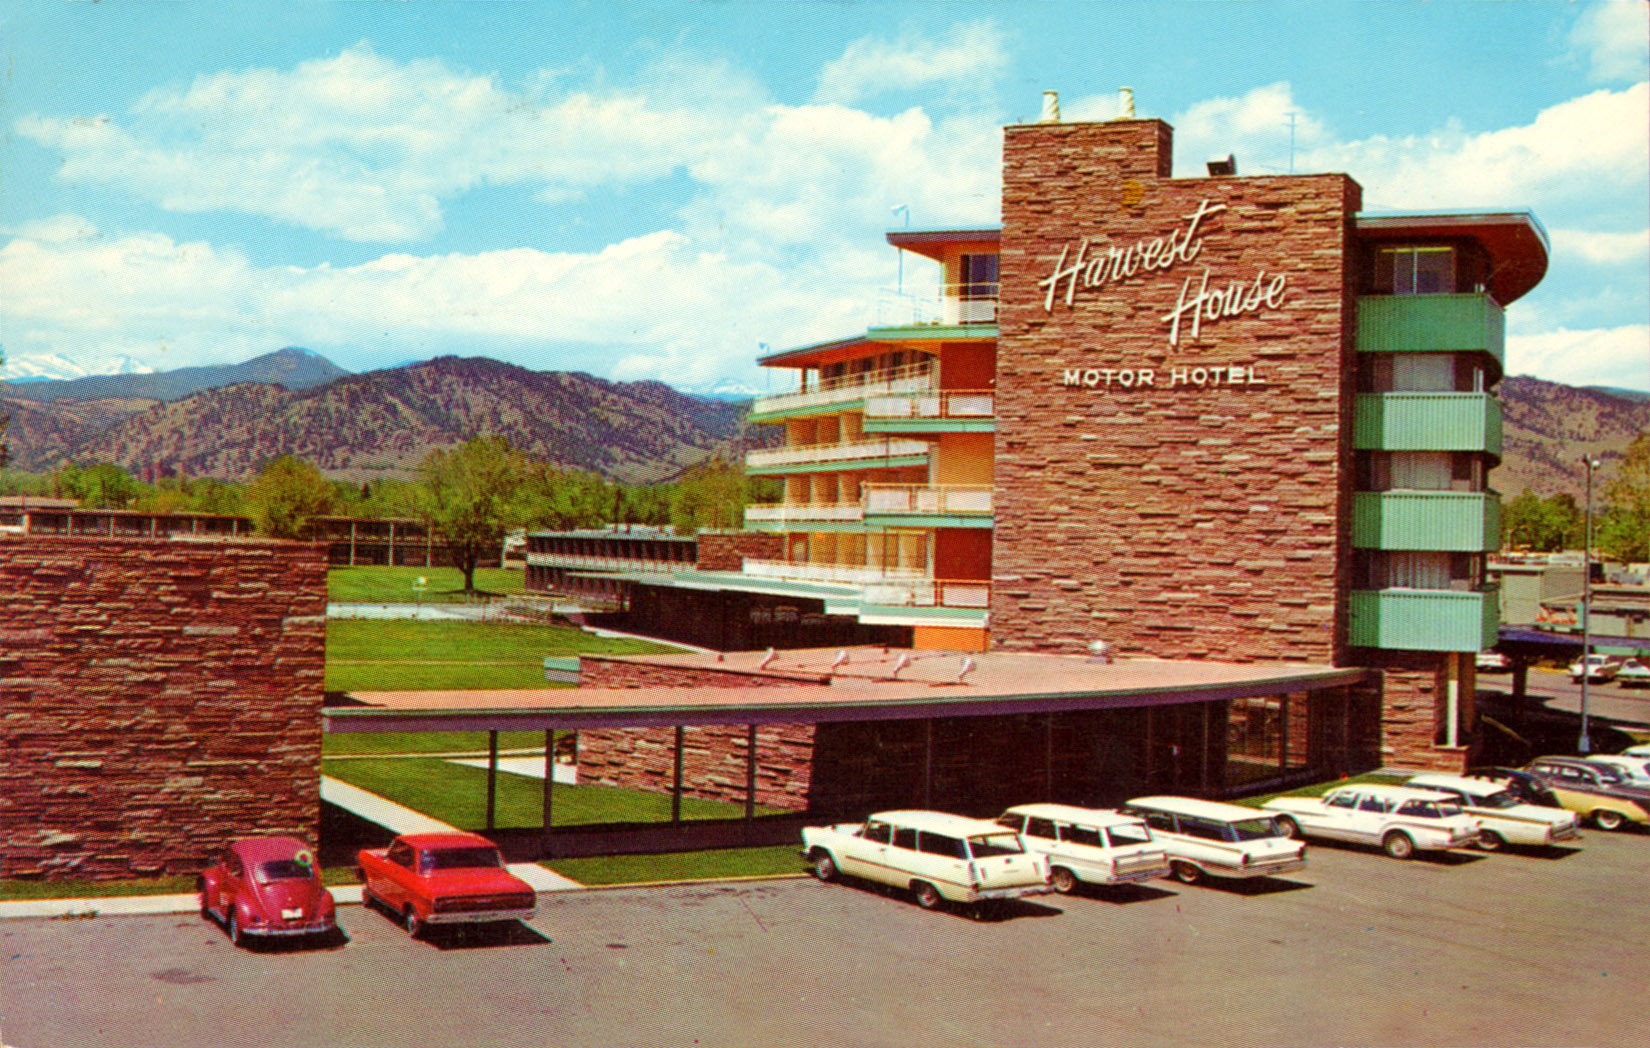 Harvest House Motor Hotel - 1345 28th Street, Boulder, Colorado U.S.A. - 1960s